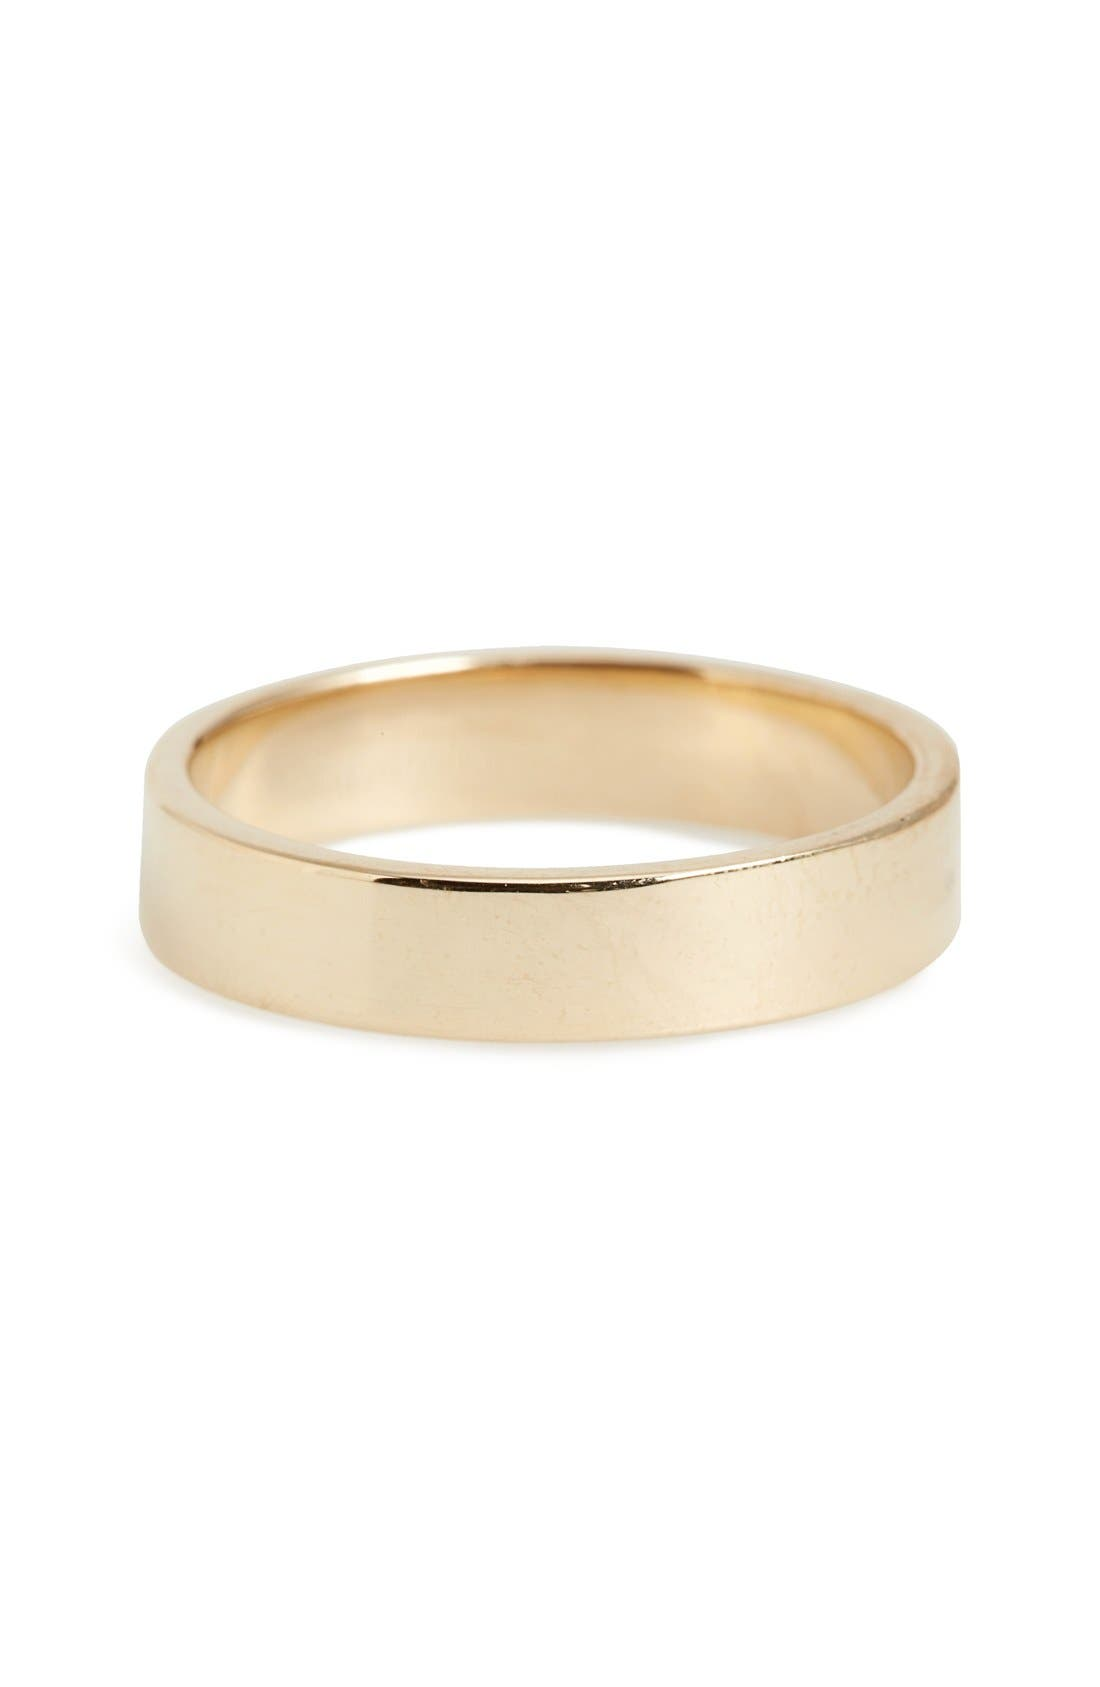 Harmony<sup>®</sup> Flat Classic 4mm Shiny Band Ring,                         Main,                         color, 710